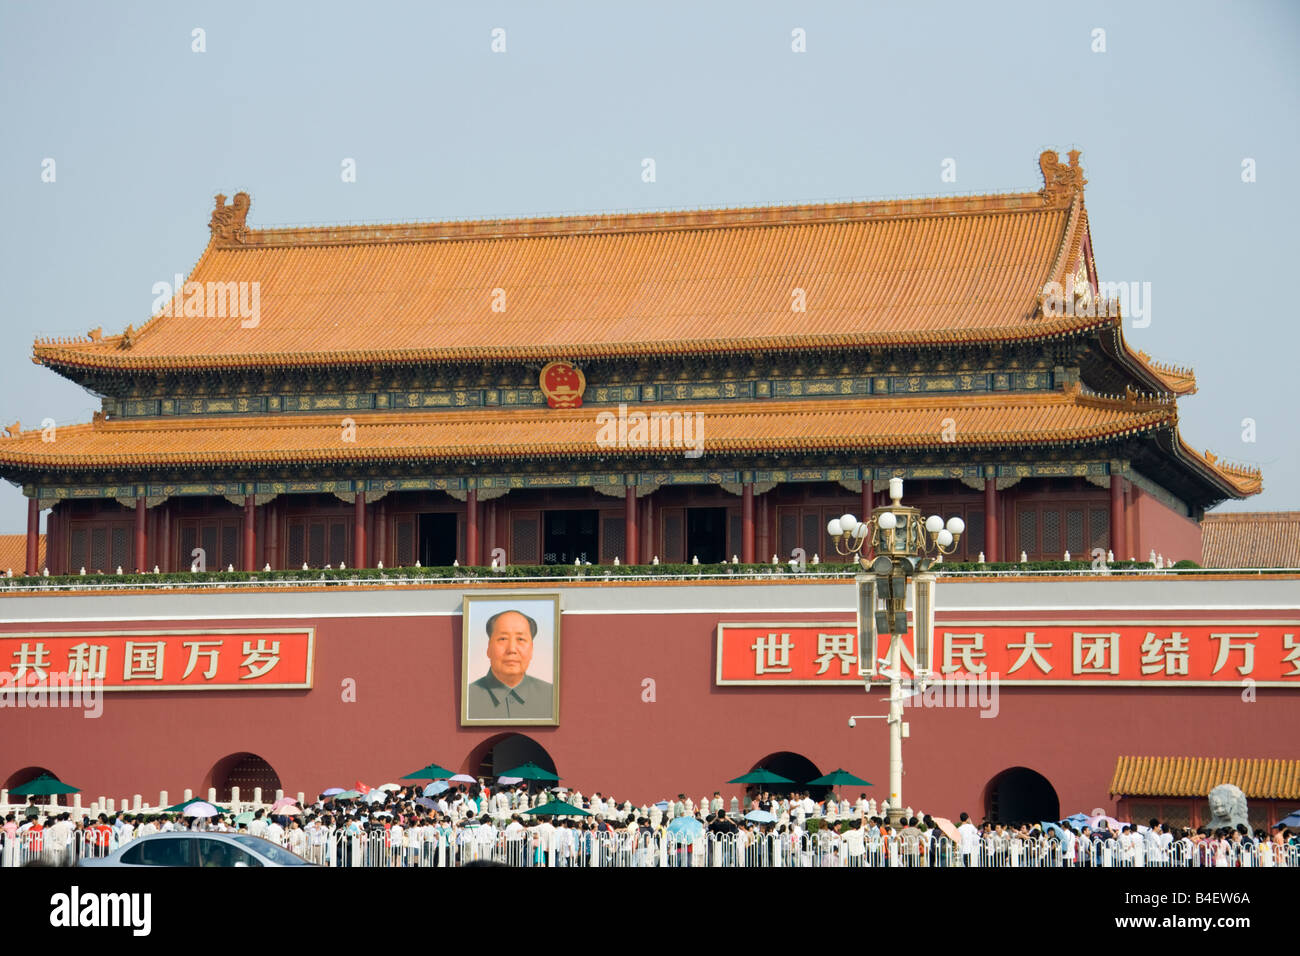 The Gate of Heavenly Peace , Tiananmen square , Beijing , China - Stock Image